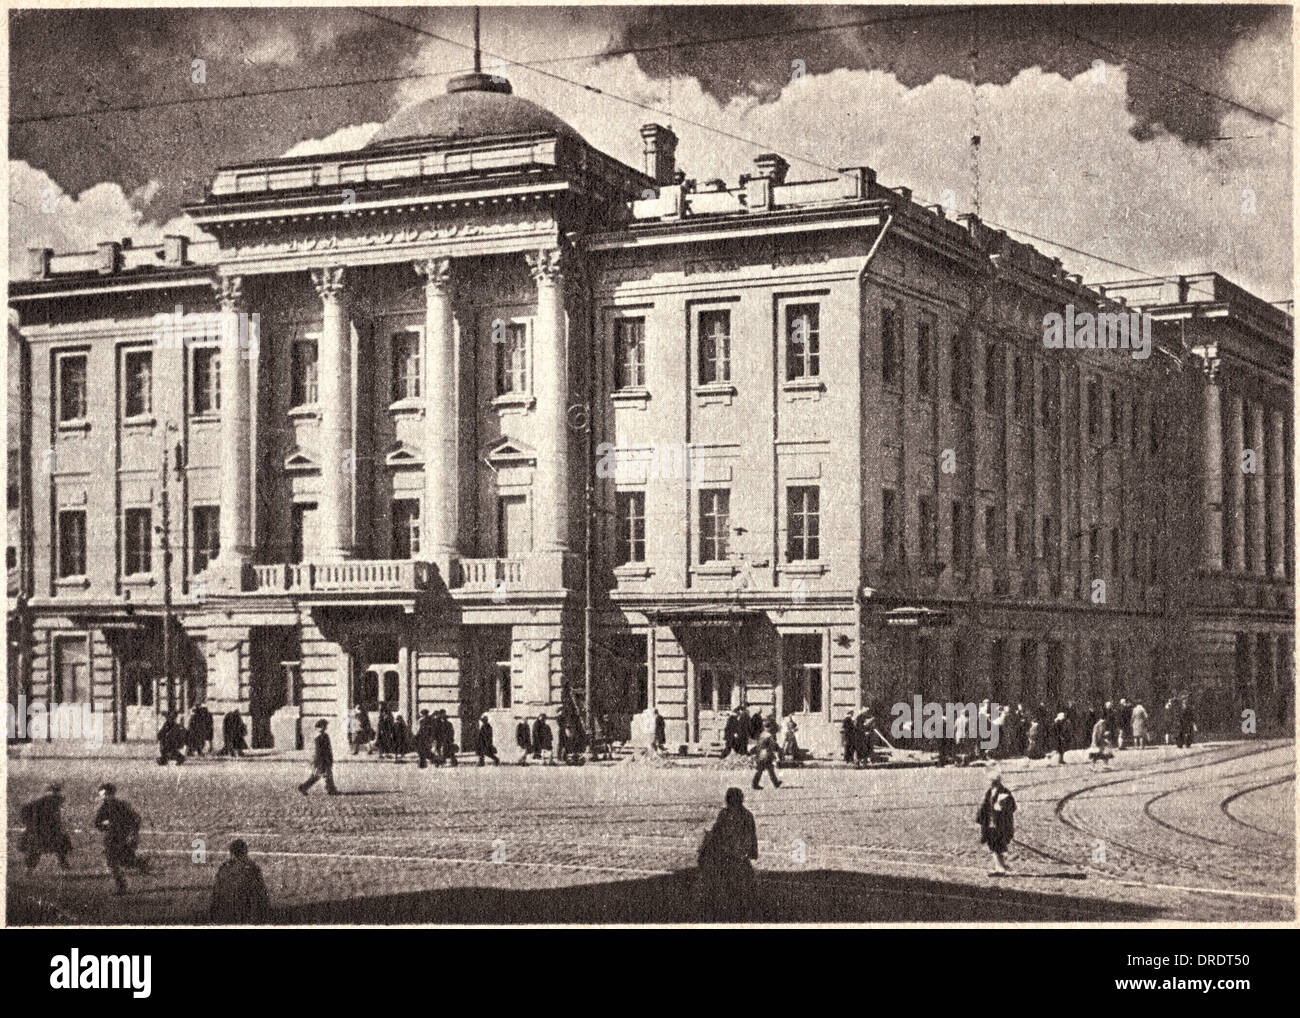 House of the Trade Unions, Moscow, Soviet Union - Stock Image